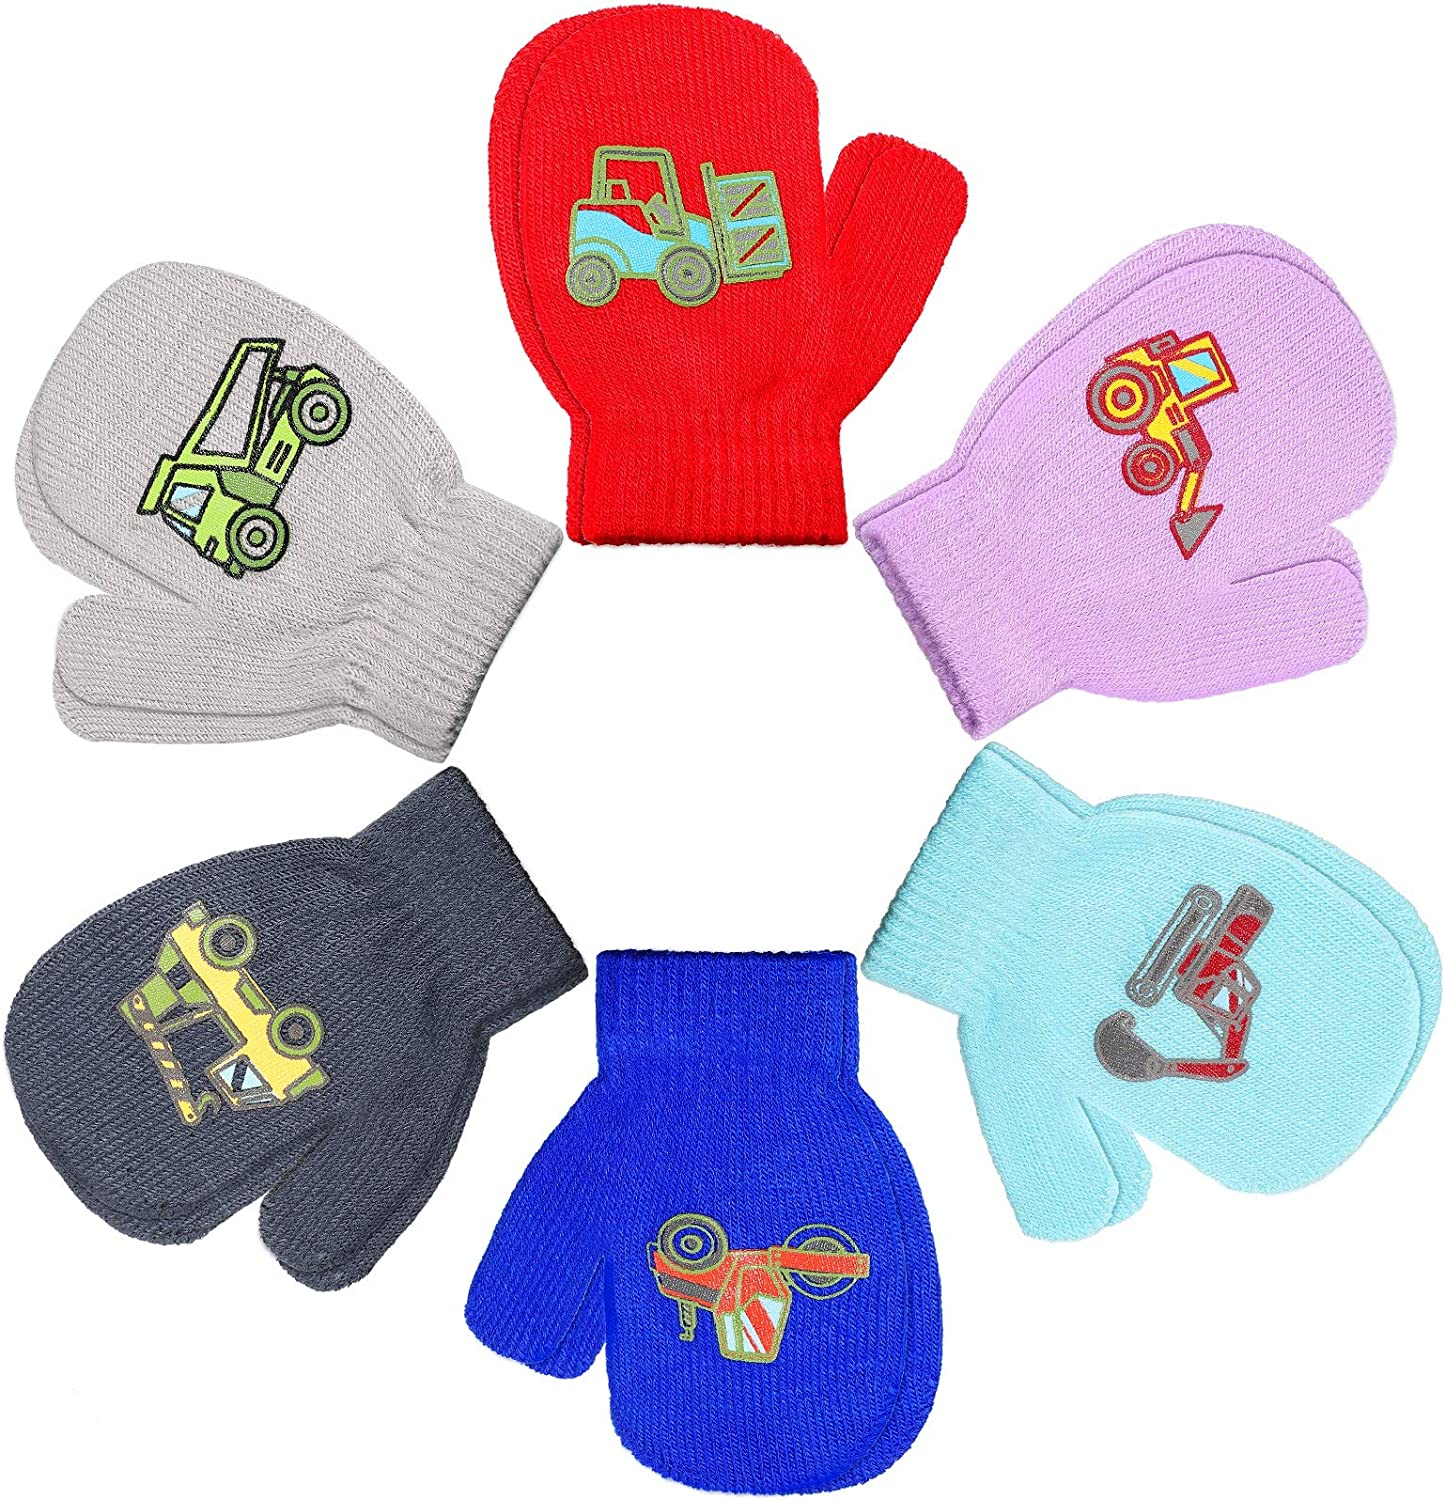 6 Pairs Kids Winter Stretch Gloves Infants Toddler Baby Knitted Mittens for 3-5 Year Old Boys